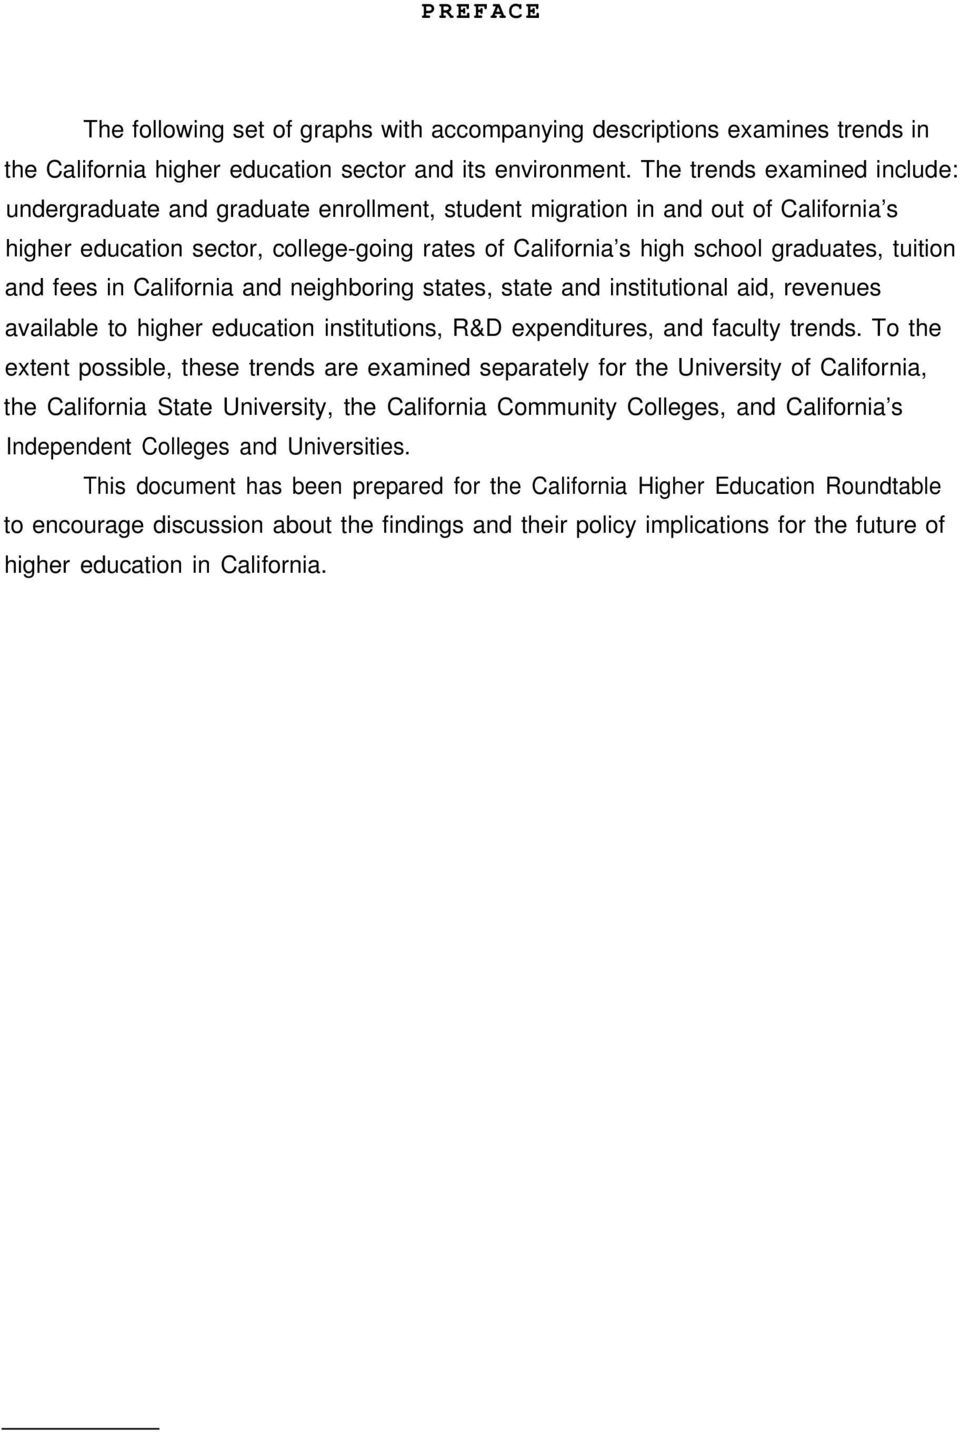 tuition and fees in California and neighboring states, state and institutional aid, revenues available to higher education institutions, R&D expenditures, and faculty trends.